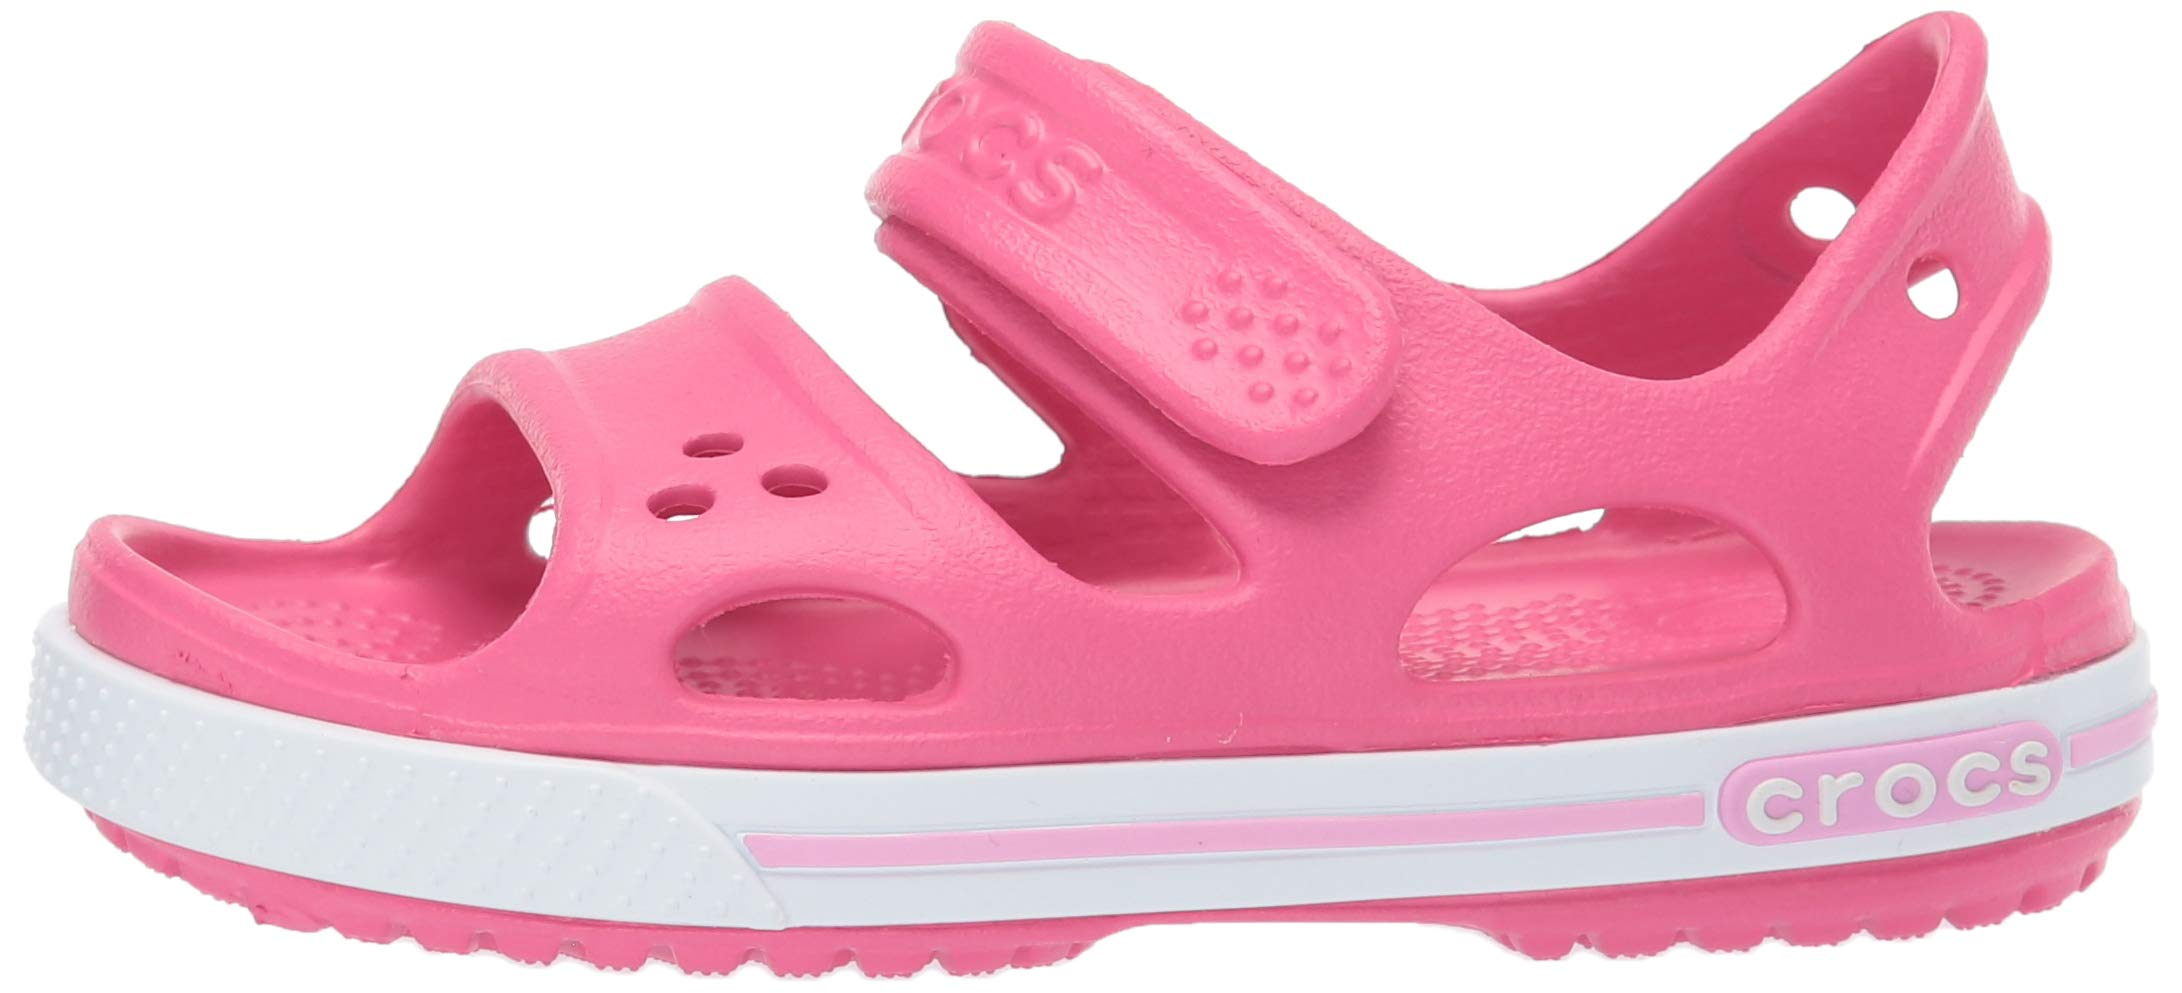 Crocs Kid's Boys and Girls Crocband II Sandal | Pre School, Paradise Pink/Carnation 6 M US Toddler by Crocs (Image #5)